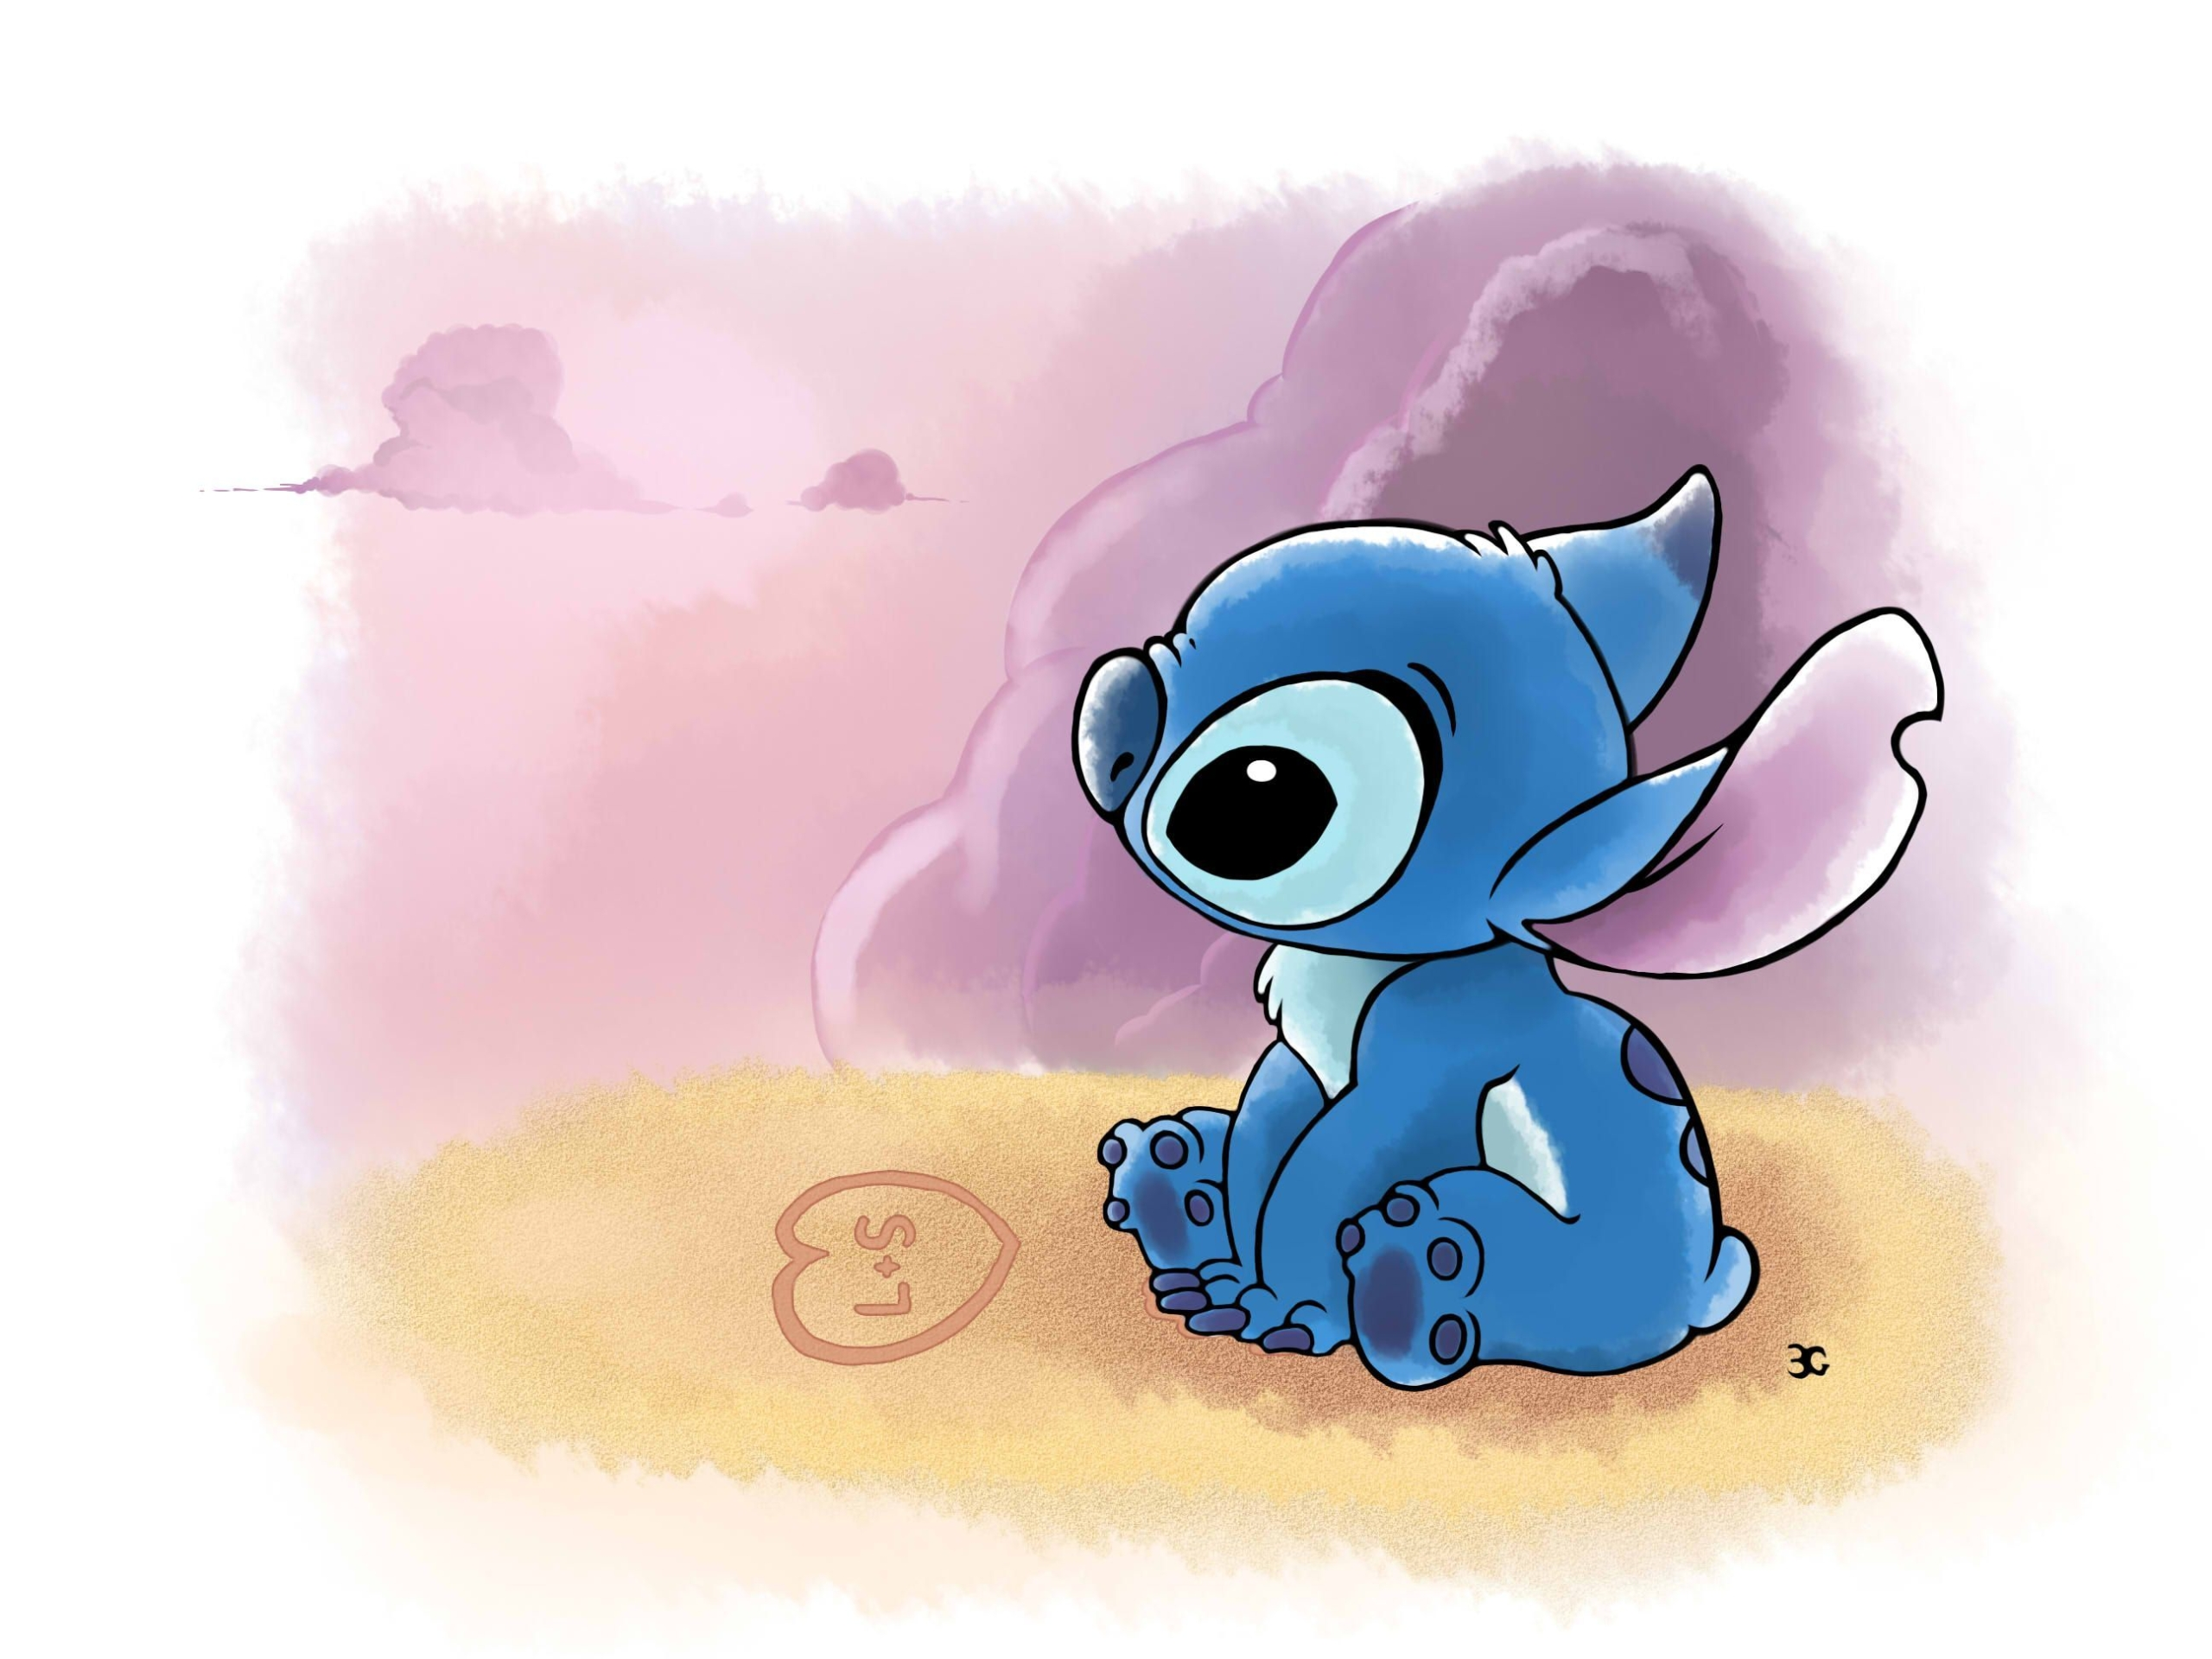 Cute Stitch Wallpapers – How to Find Unique Wallpaper Designs